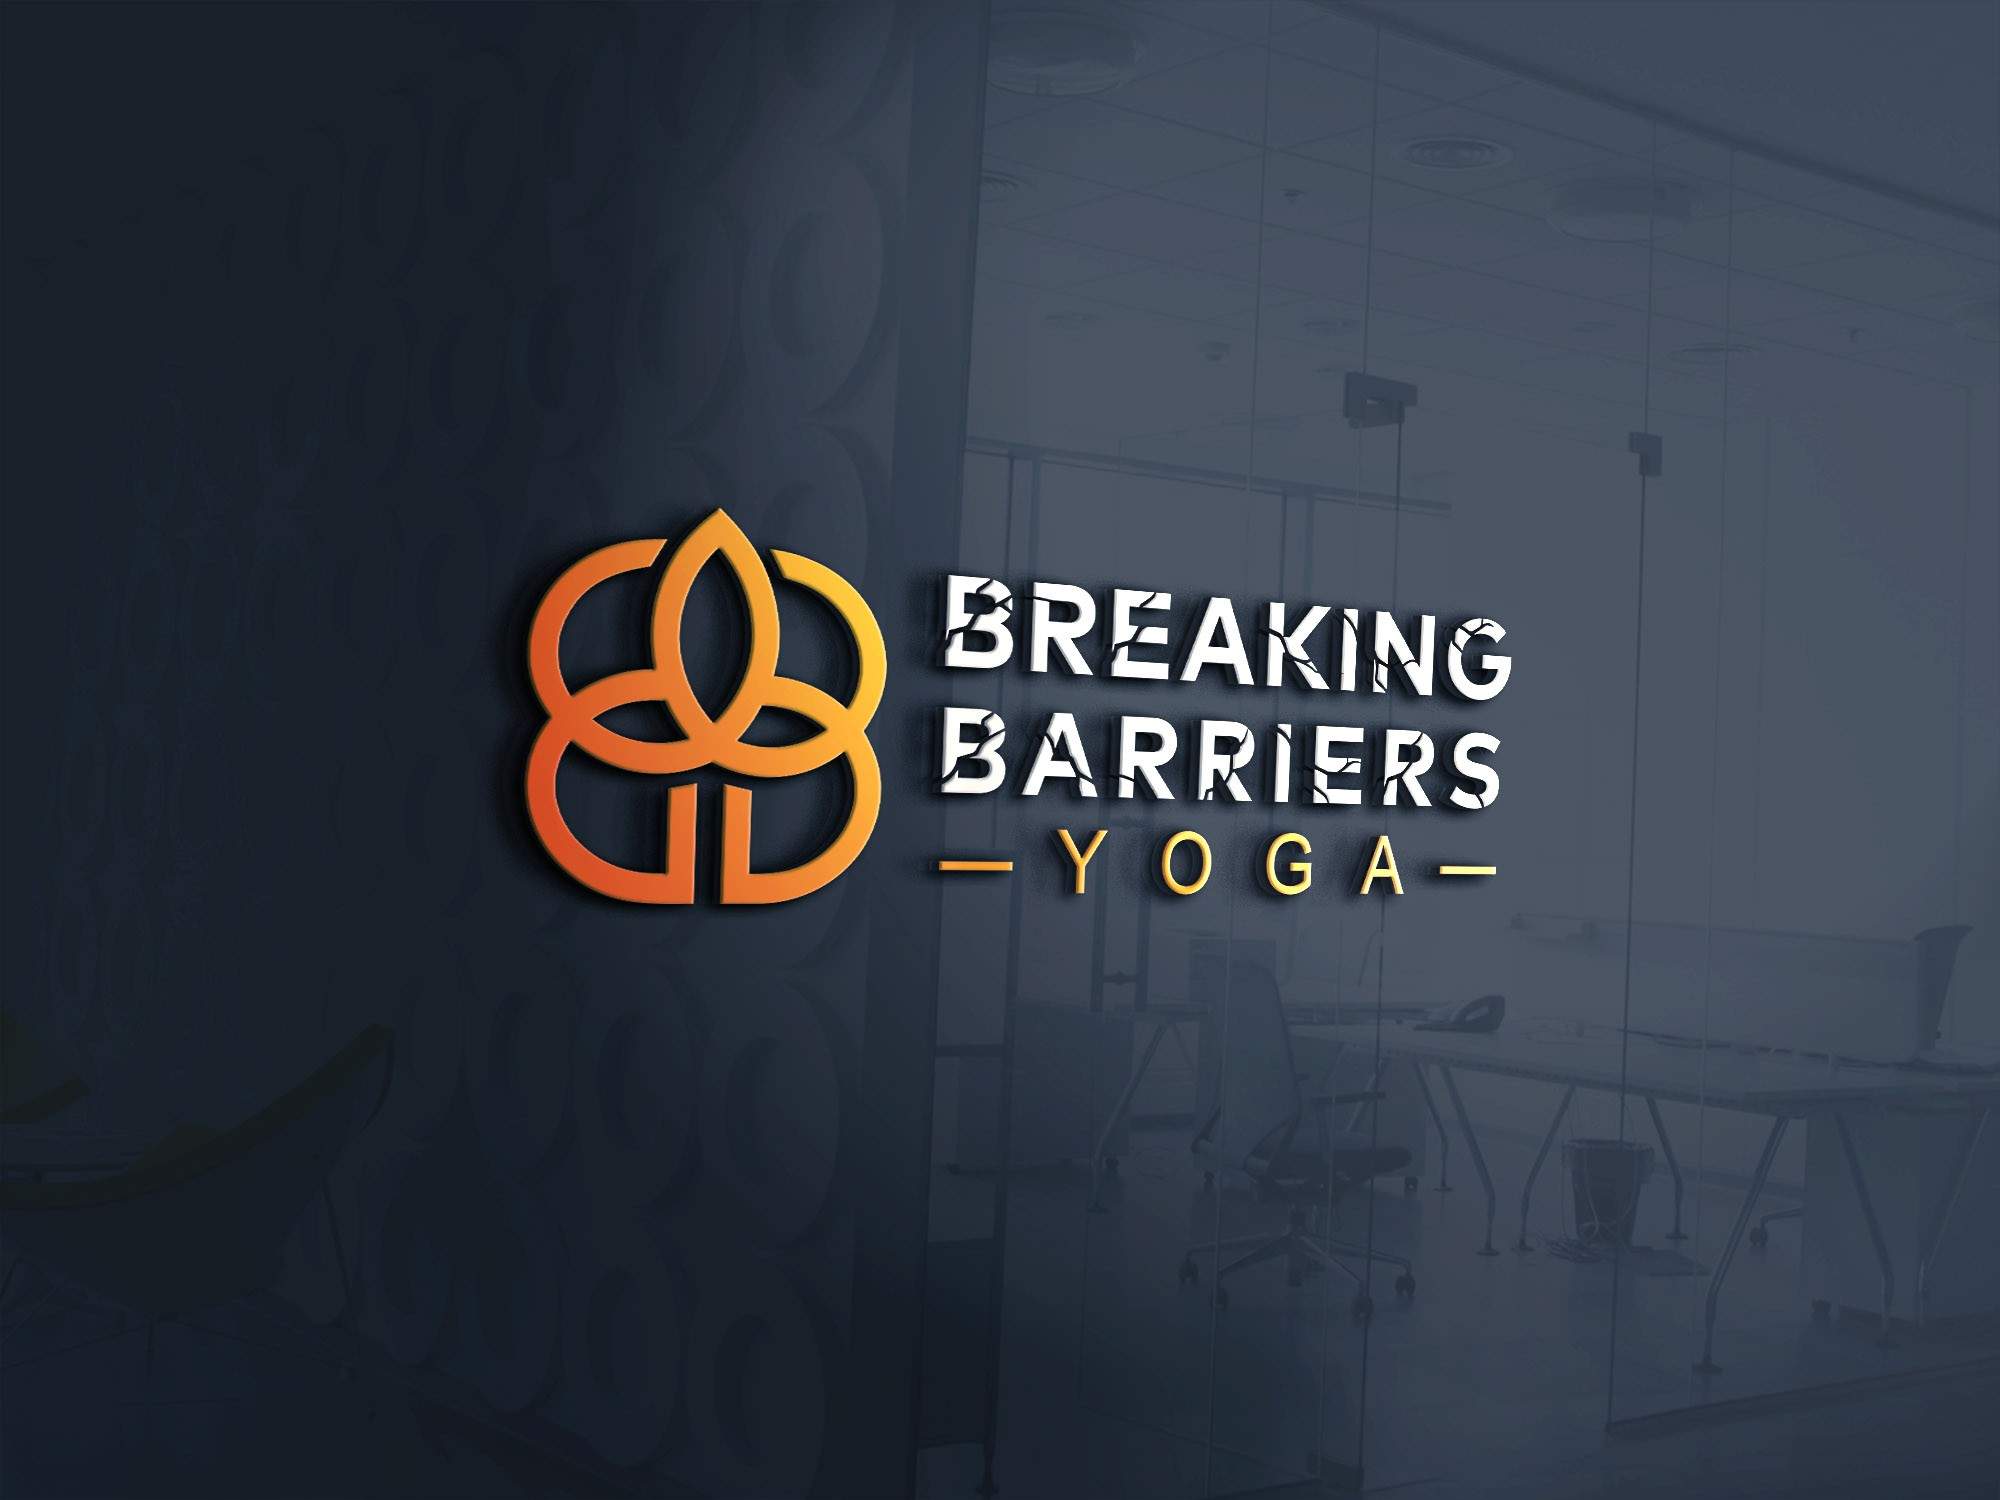 Breaking Barriers Yoga wants to Change the World!